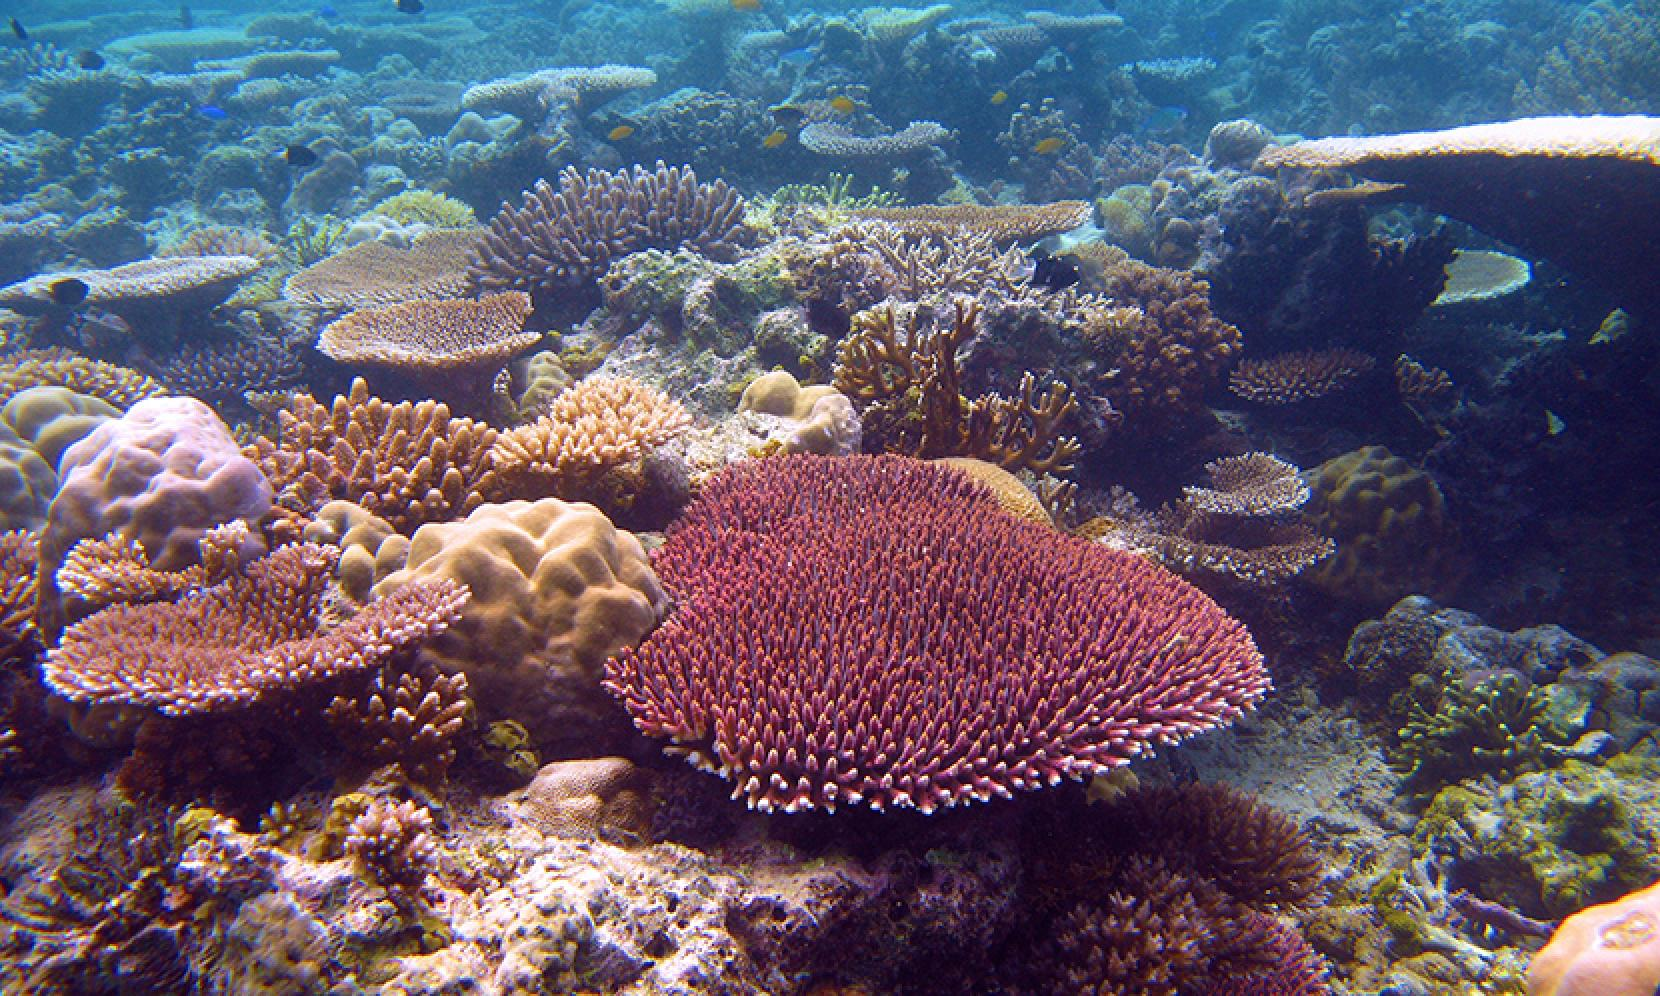 There's still time for us to save the Great Barrier Reef